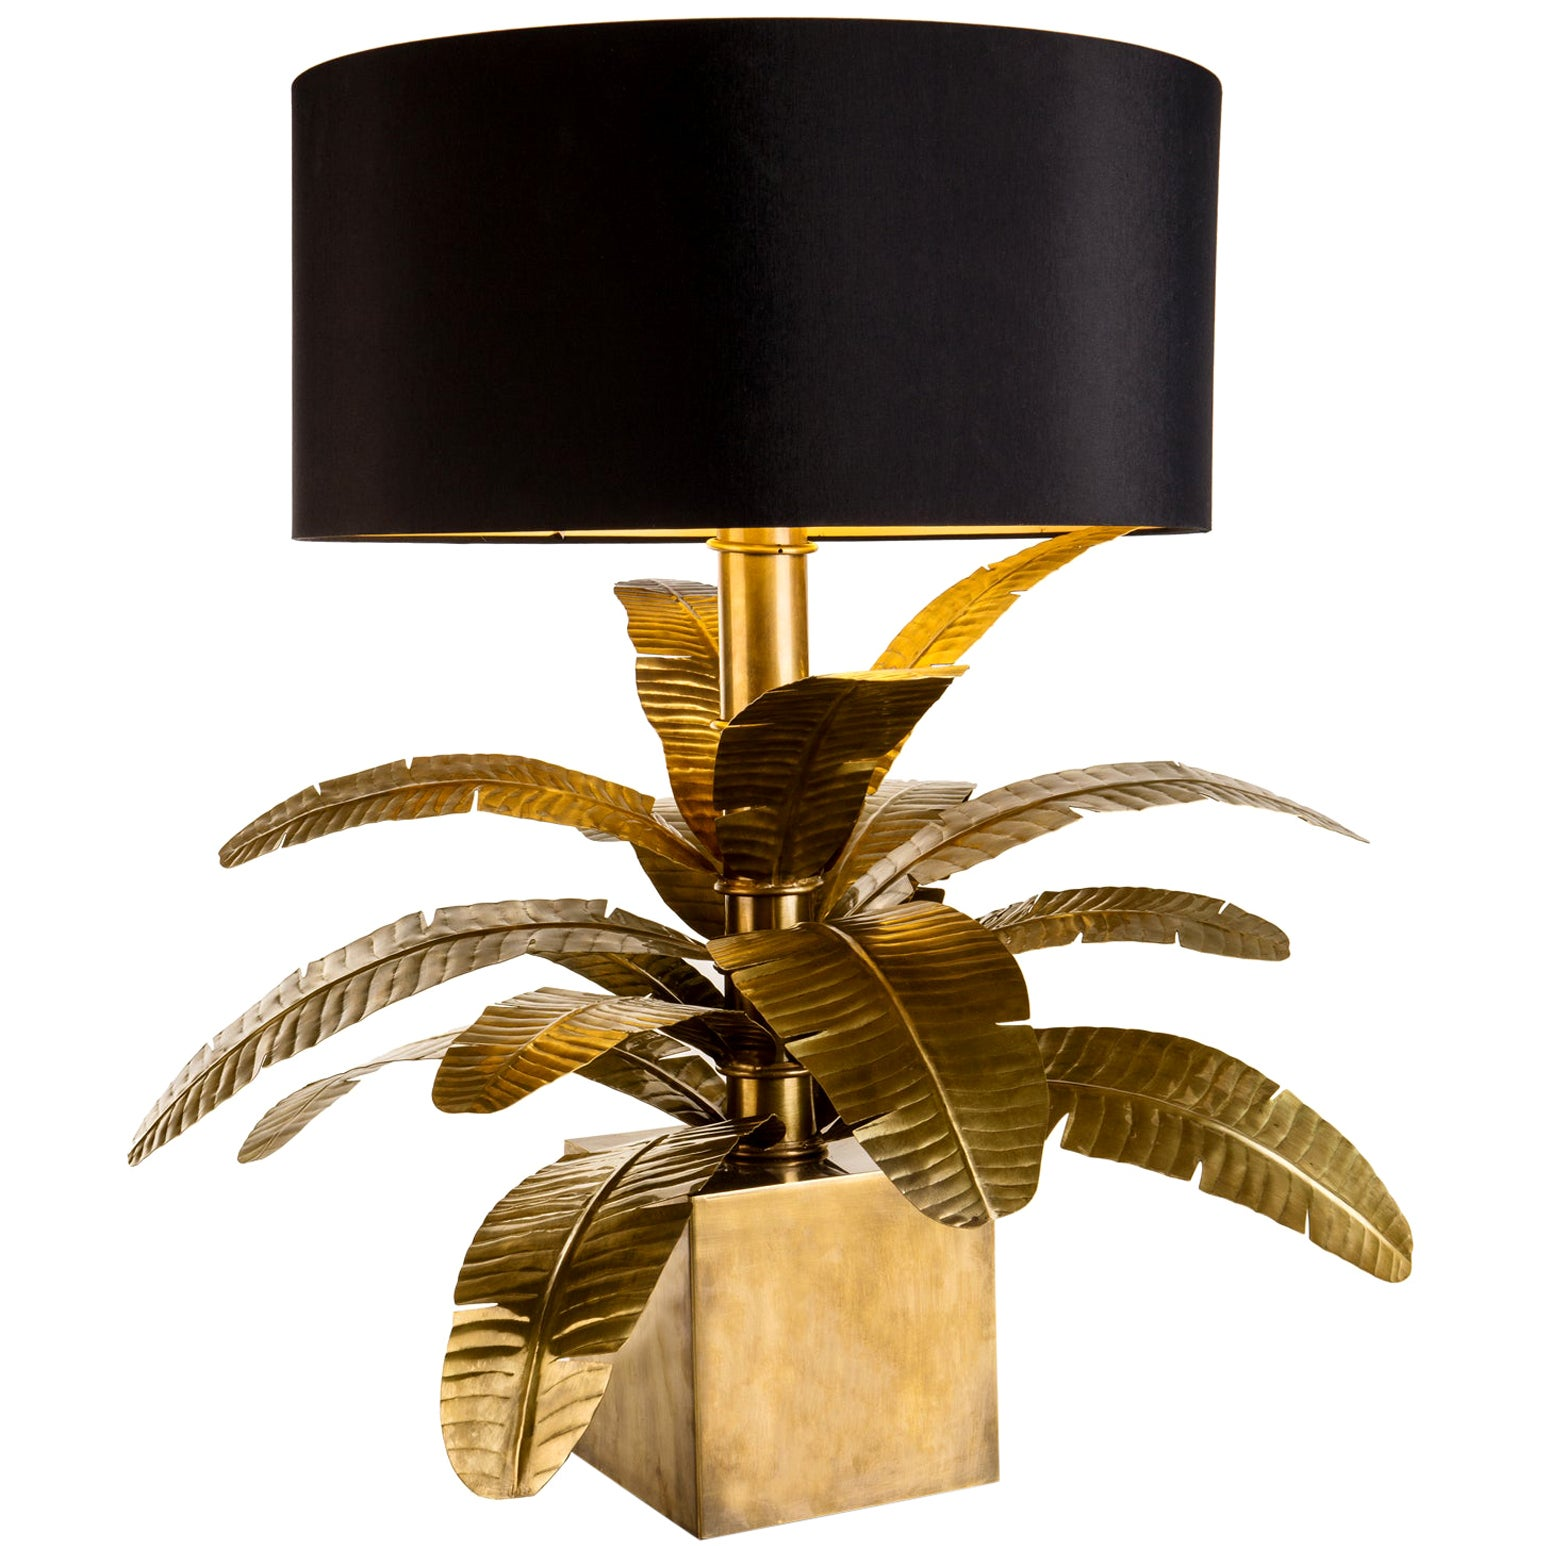 Contemporary italian made brass palm lamp with black fabric lampshade